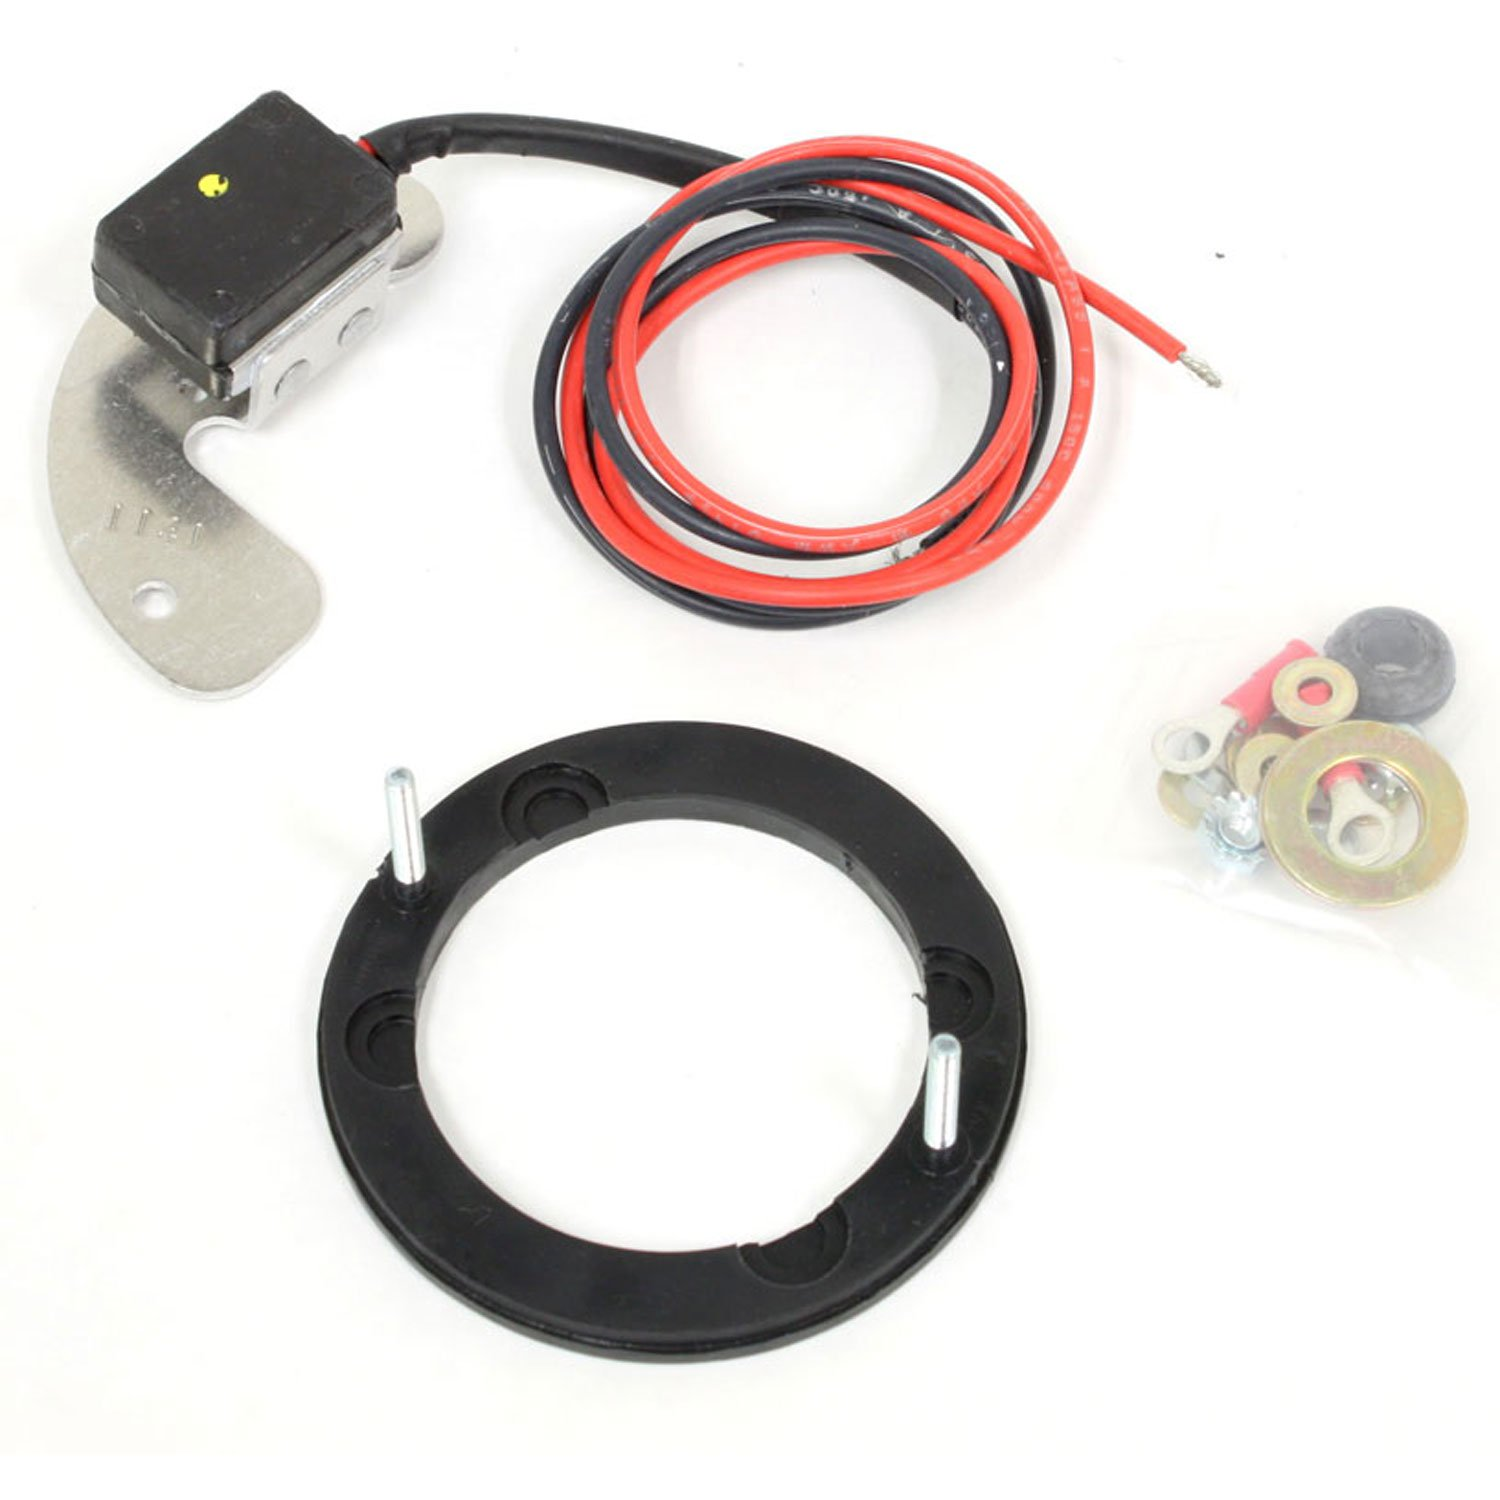 PerTronix 11220 Replacement Ignition Control Module For 1122